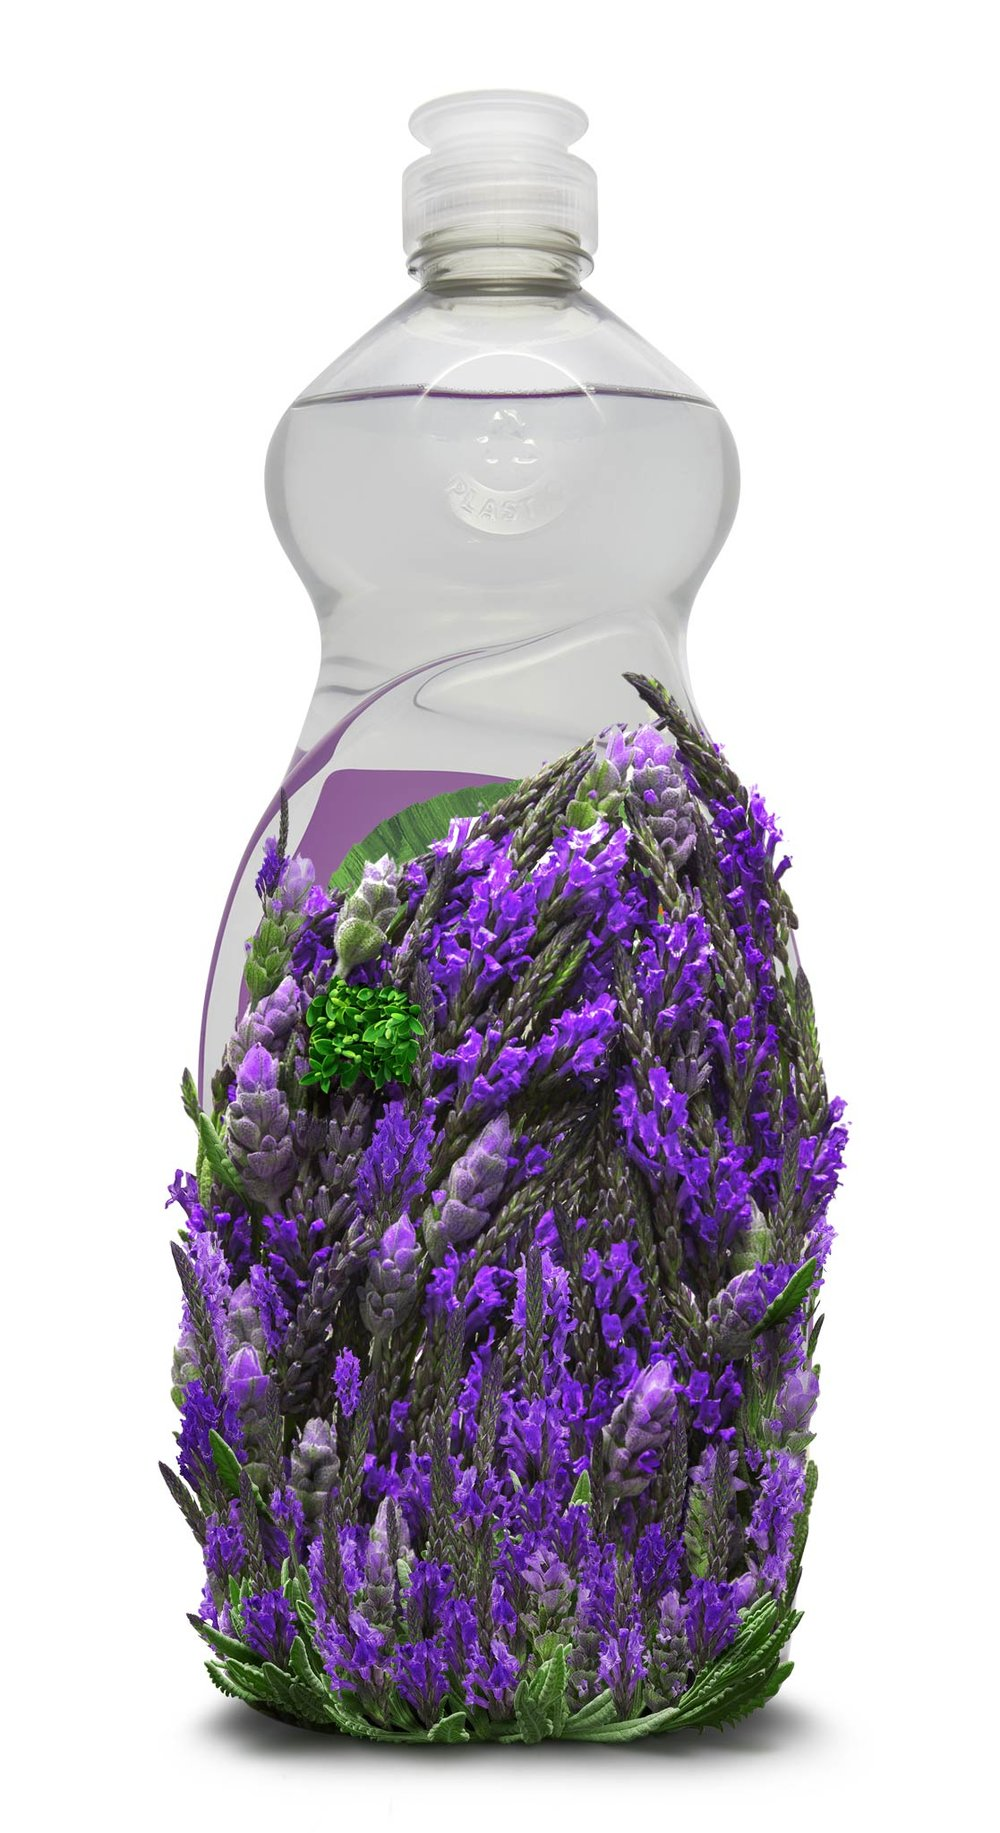 Lavender_DishWashing_15.jpg